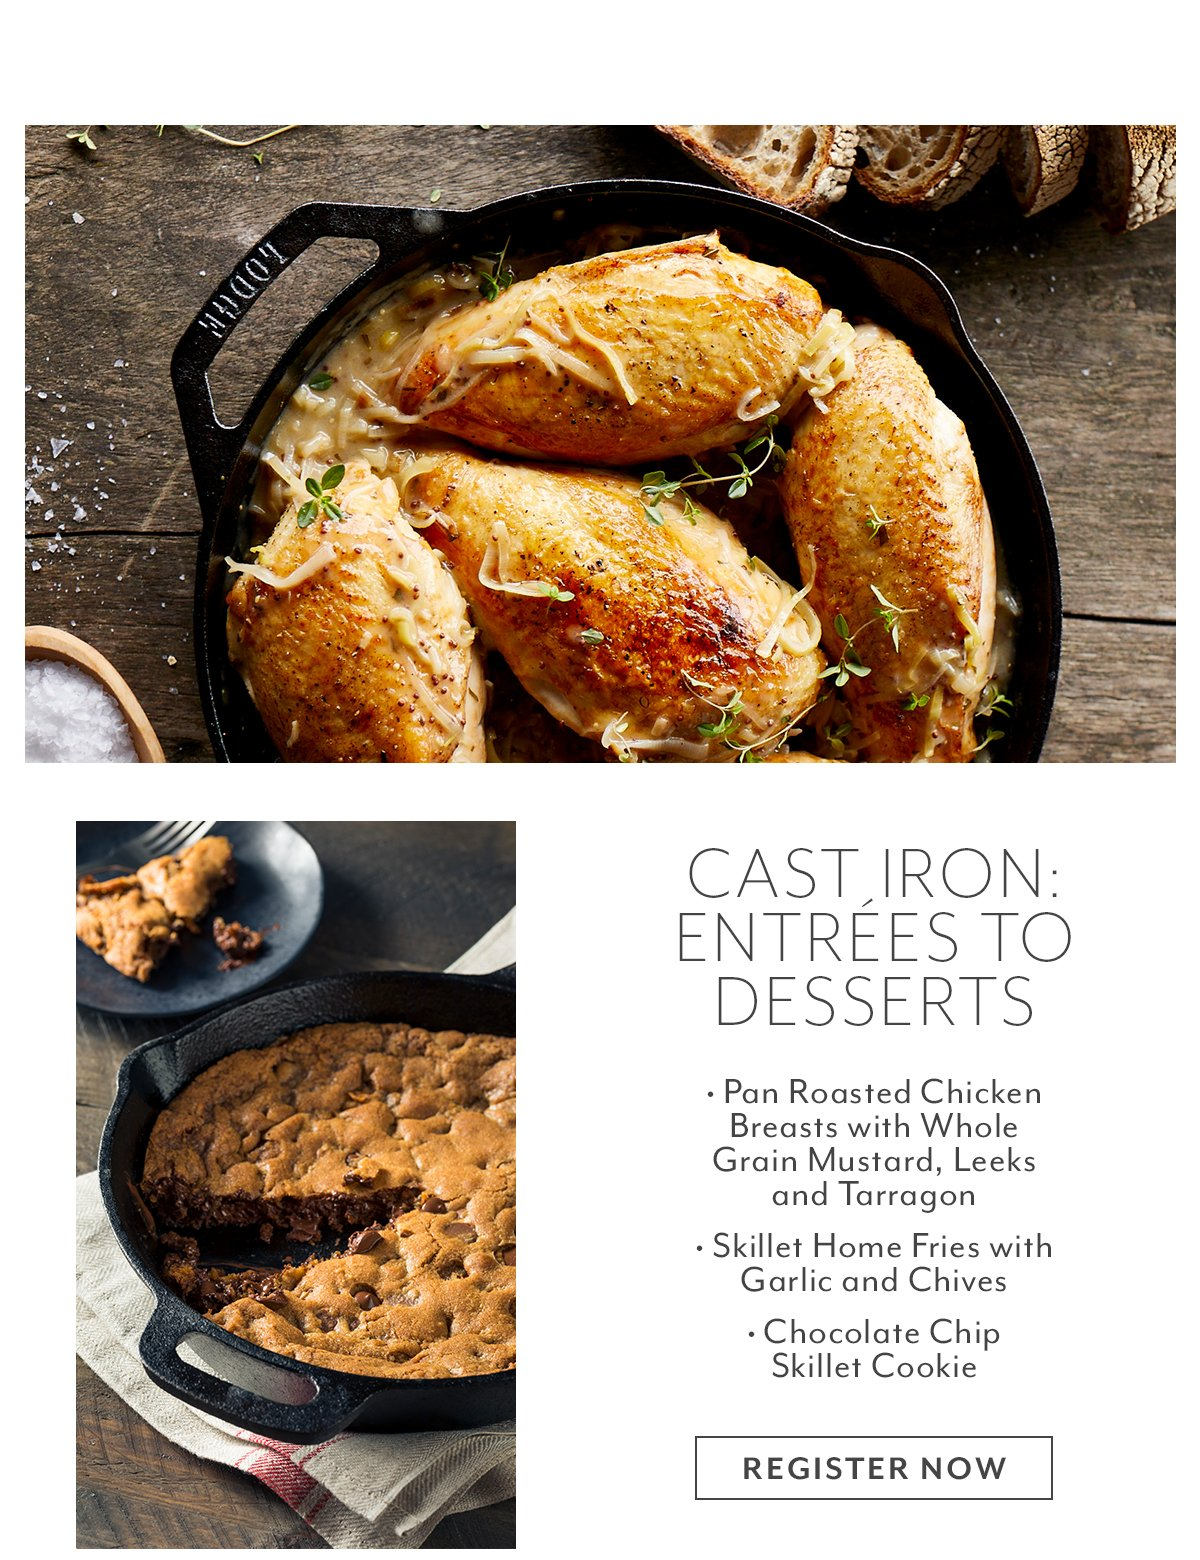 Class: Cast Iron • Entrees to Desserts